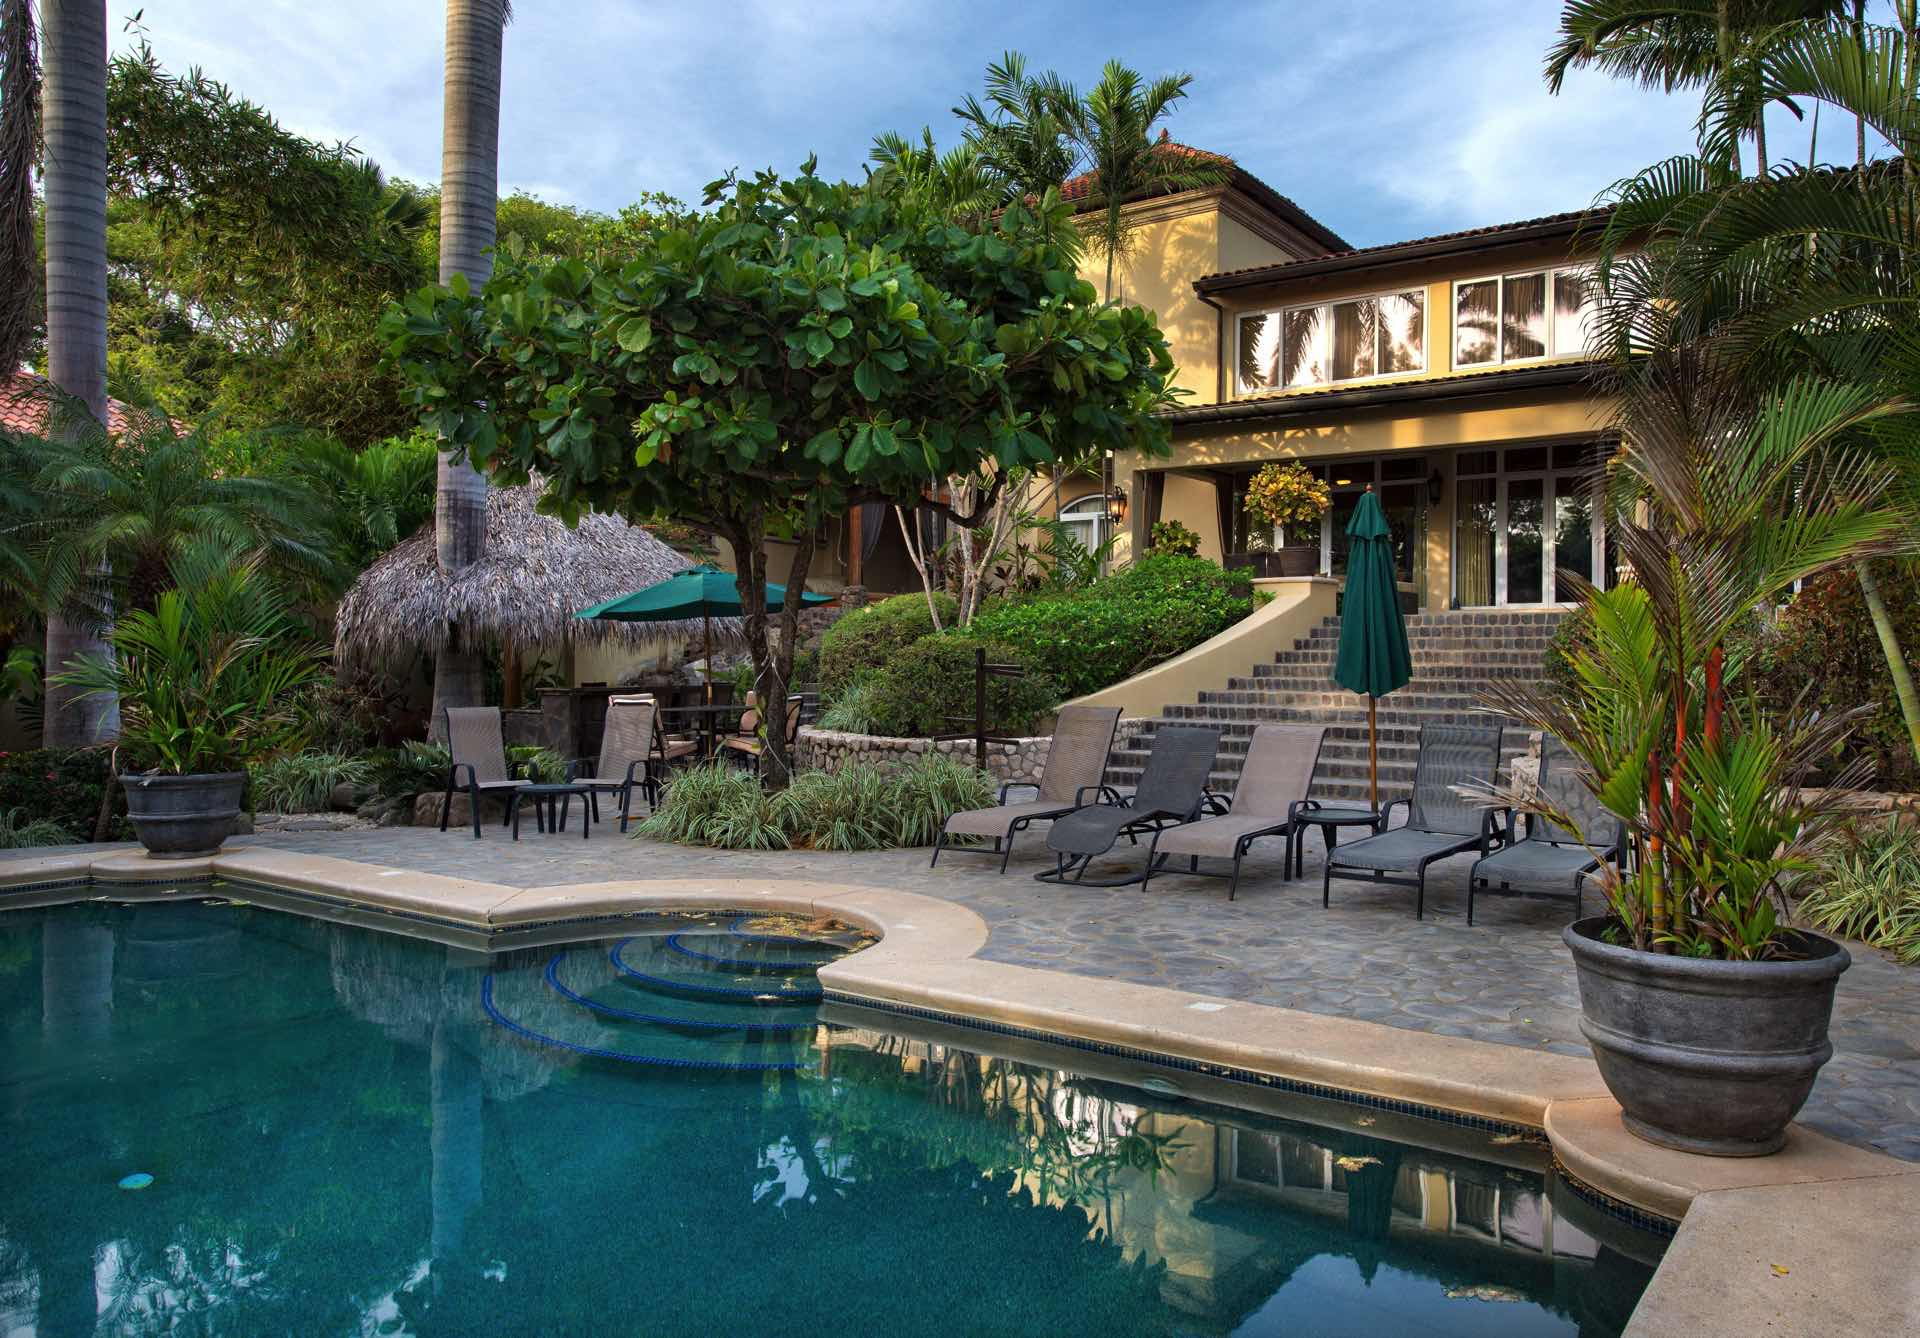 Beach house with hotel-size pool, palapa bar, and grand stairca